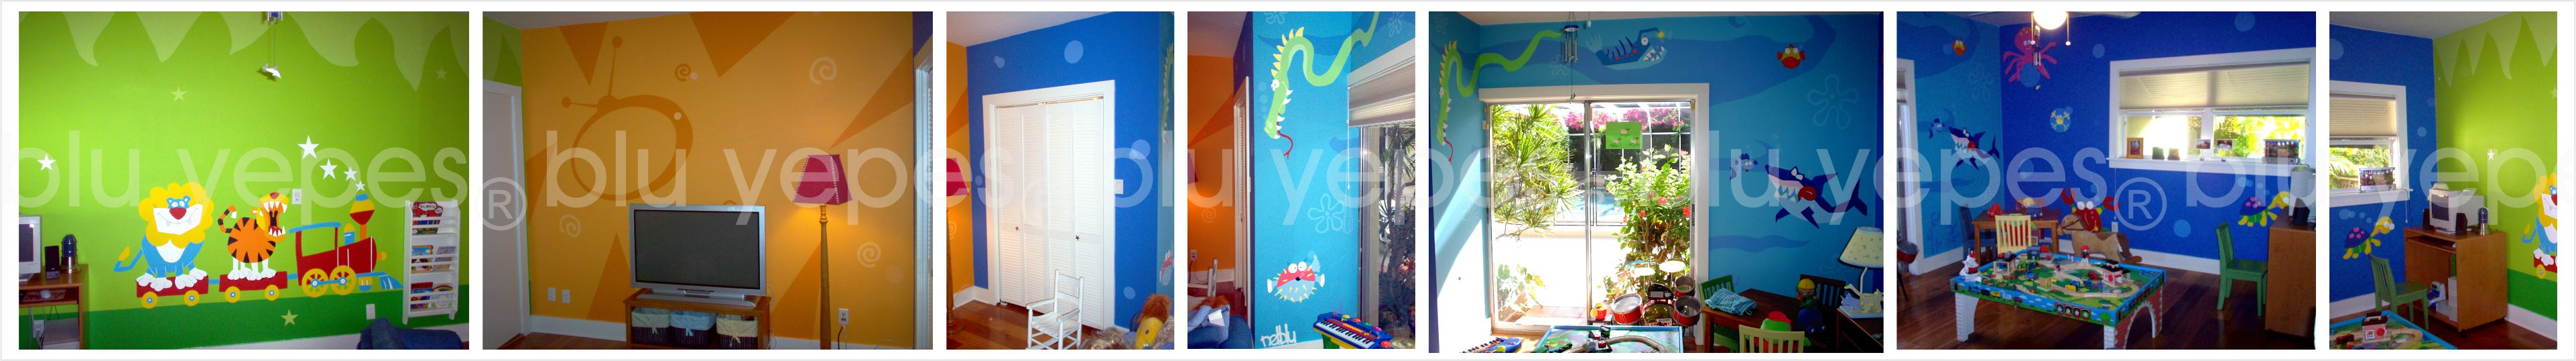 Wall-Design-7-Final Frais De Aquarium Rond